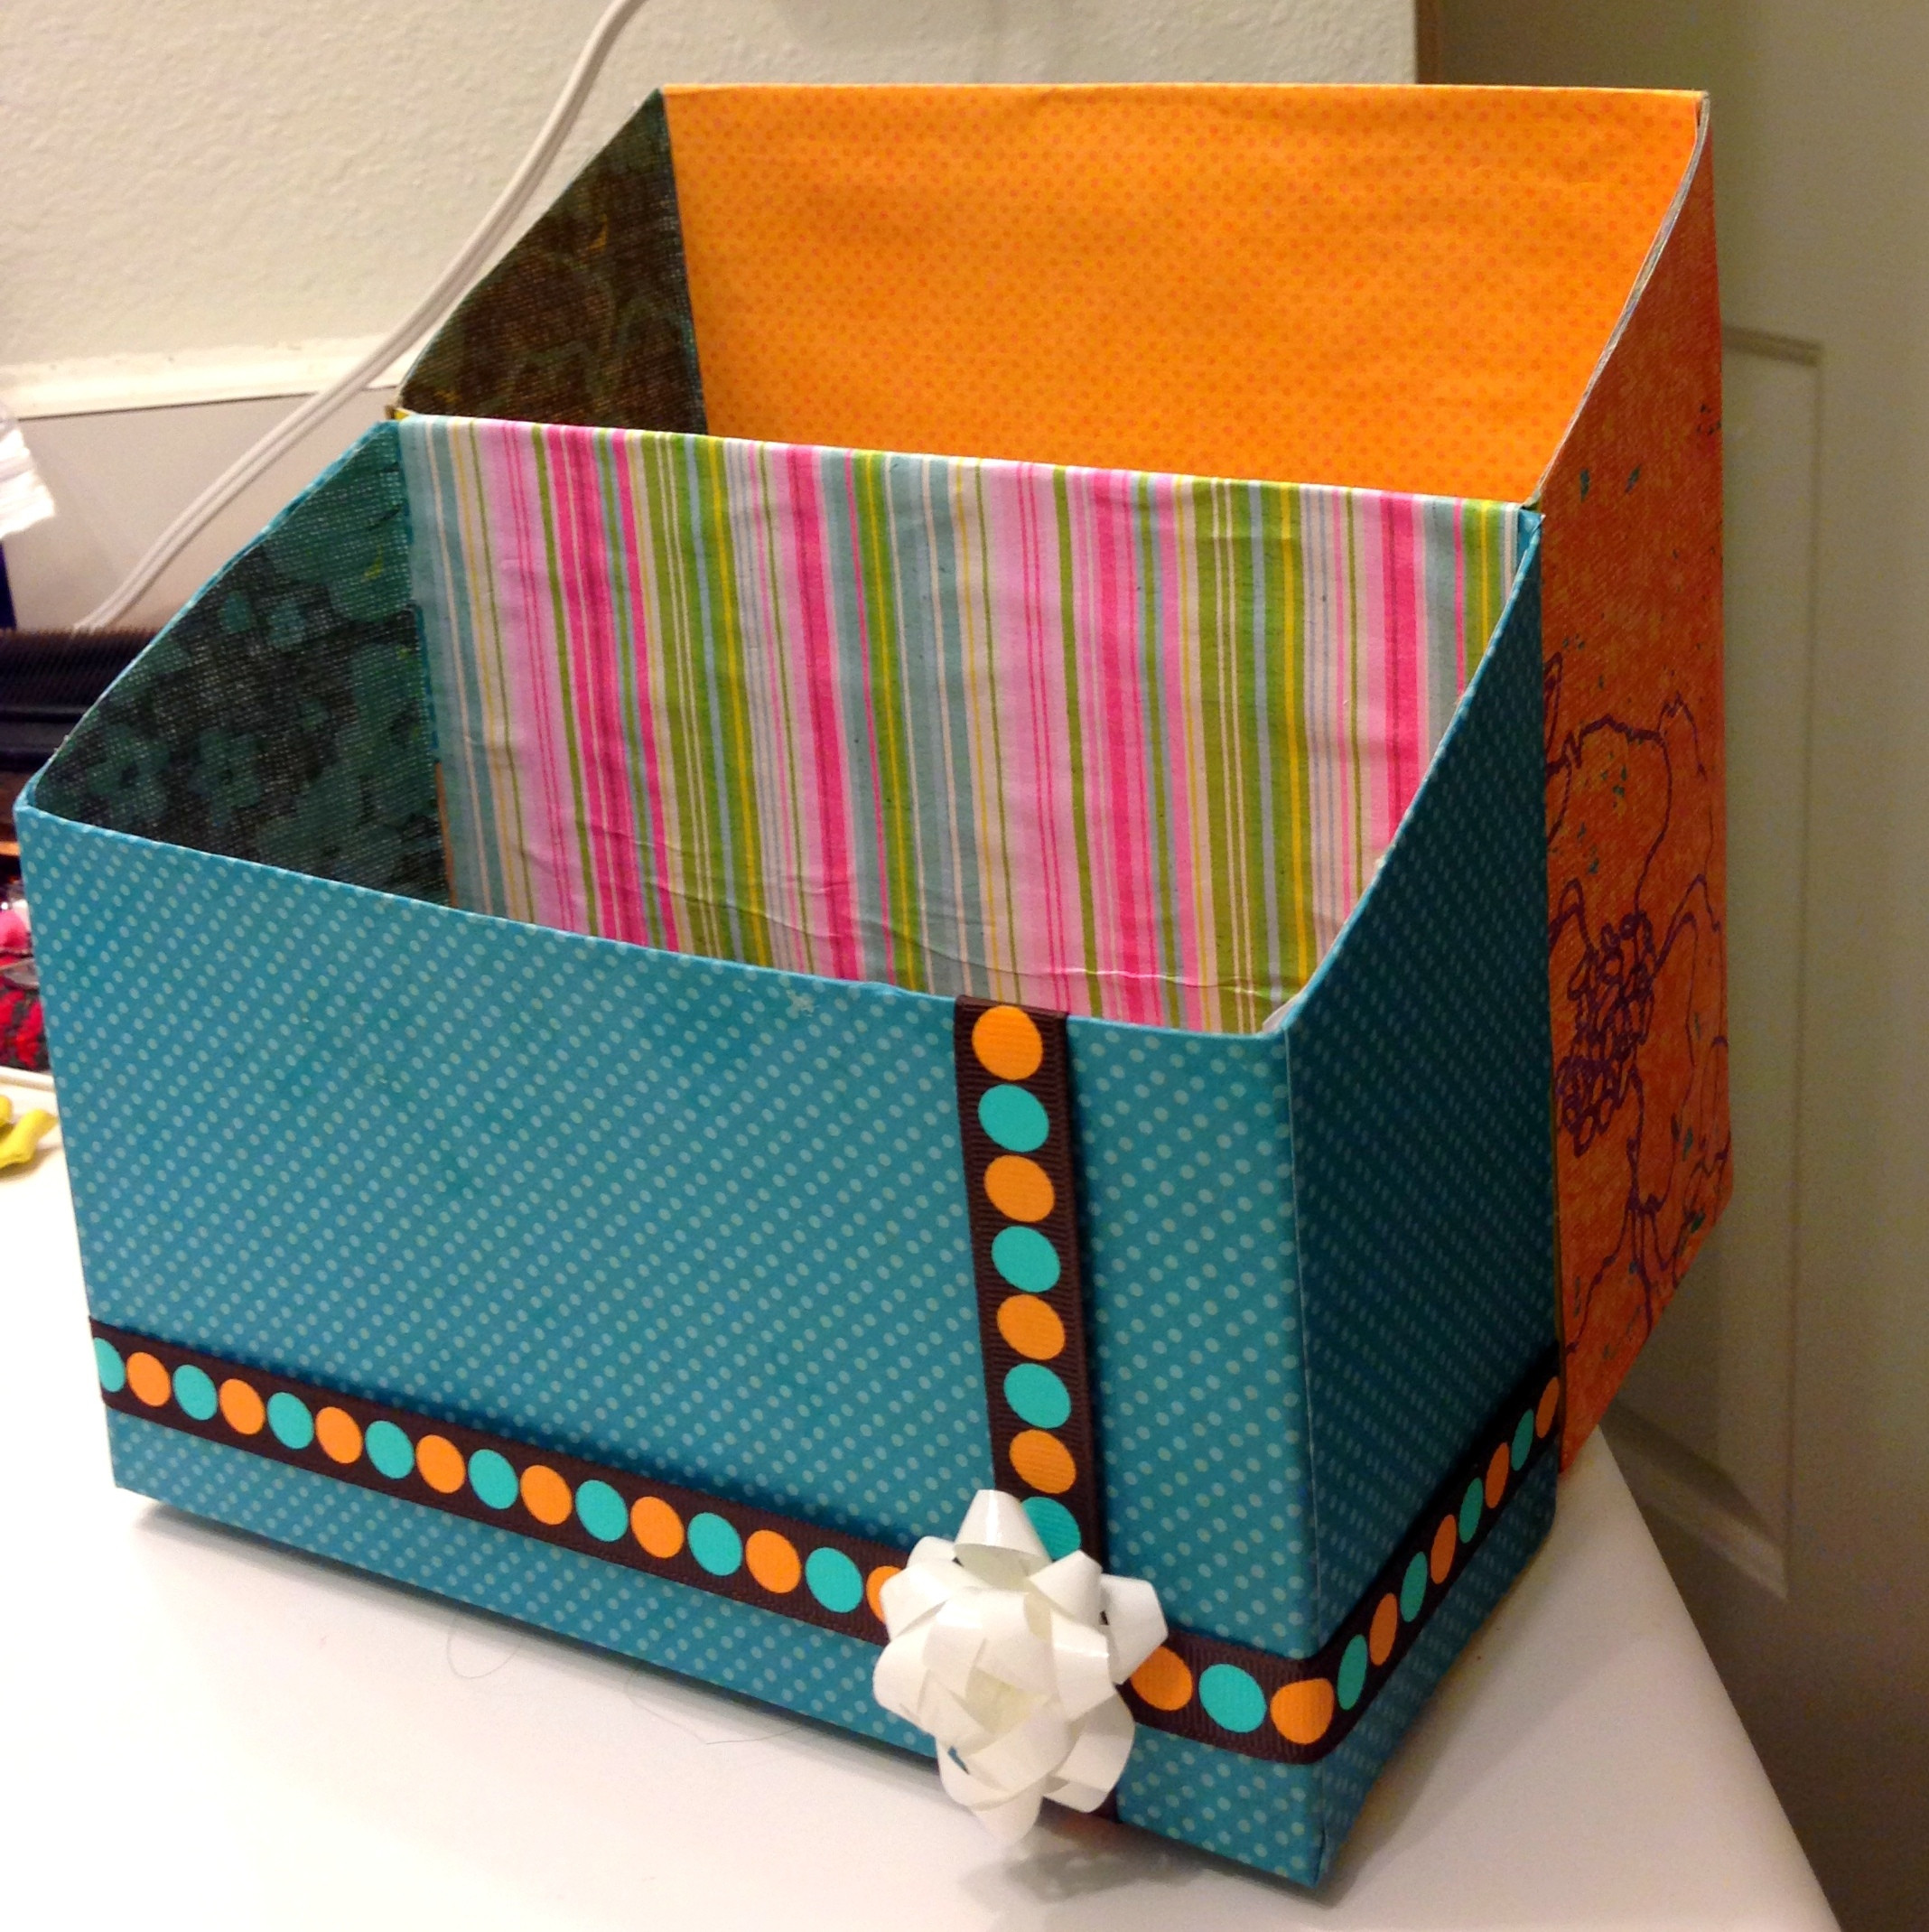 Best ideas about DIY Mail Organizer Cardboard . Save or Pin DIY mail organizer from cereal box Now.